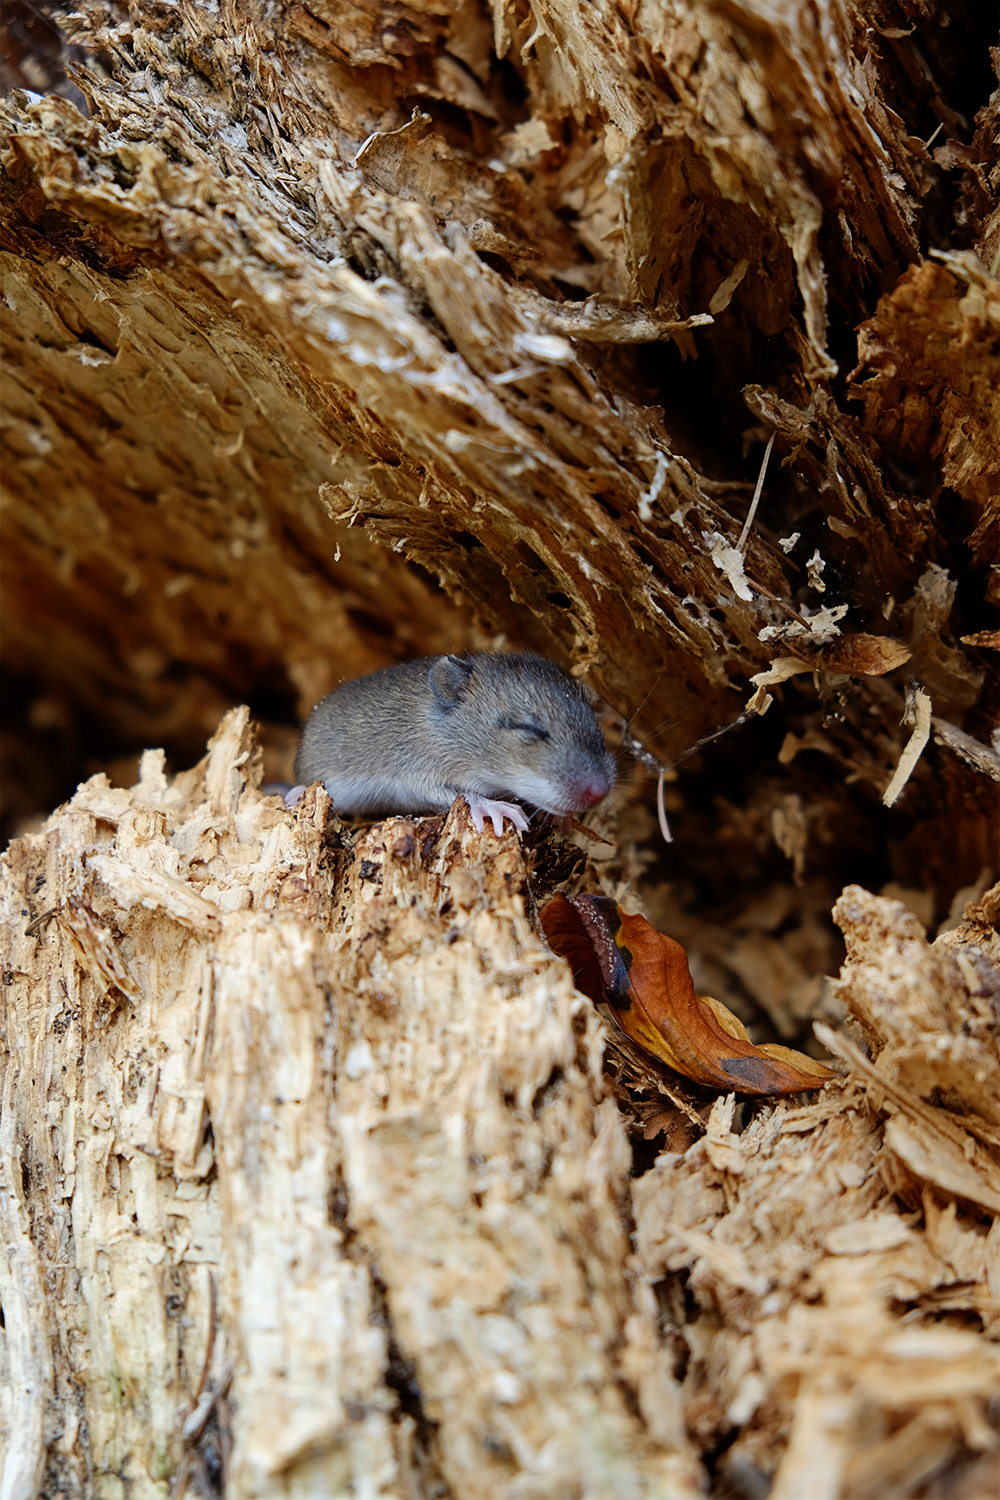 Above: Tiny baby mouse, his eyes hadn't opened